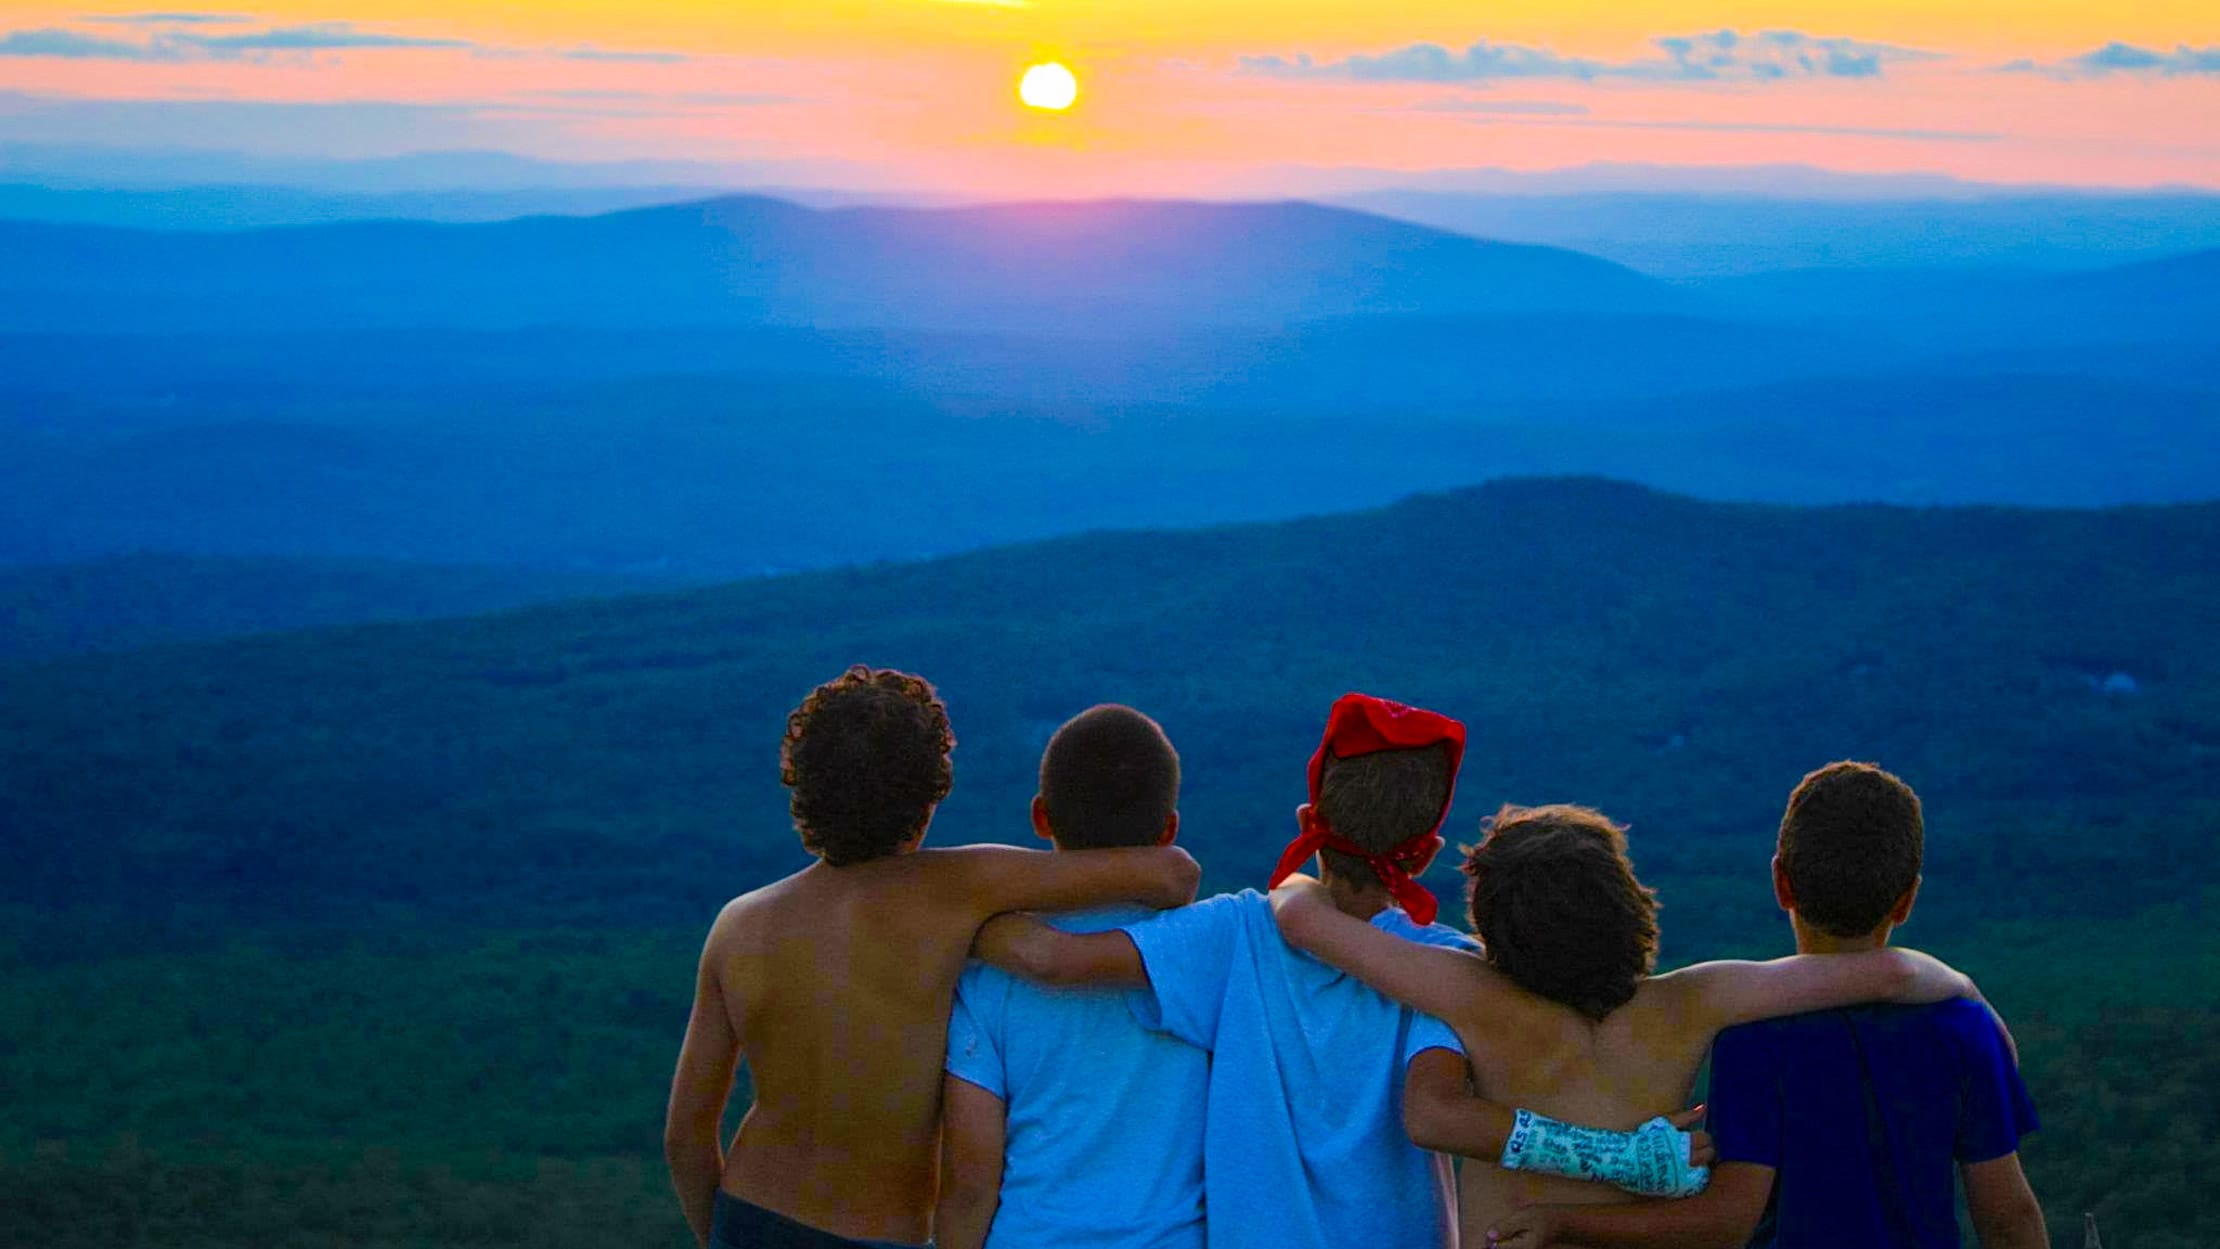 Boys on mountain admiring sunset